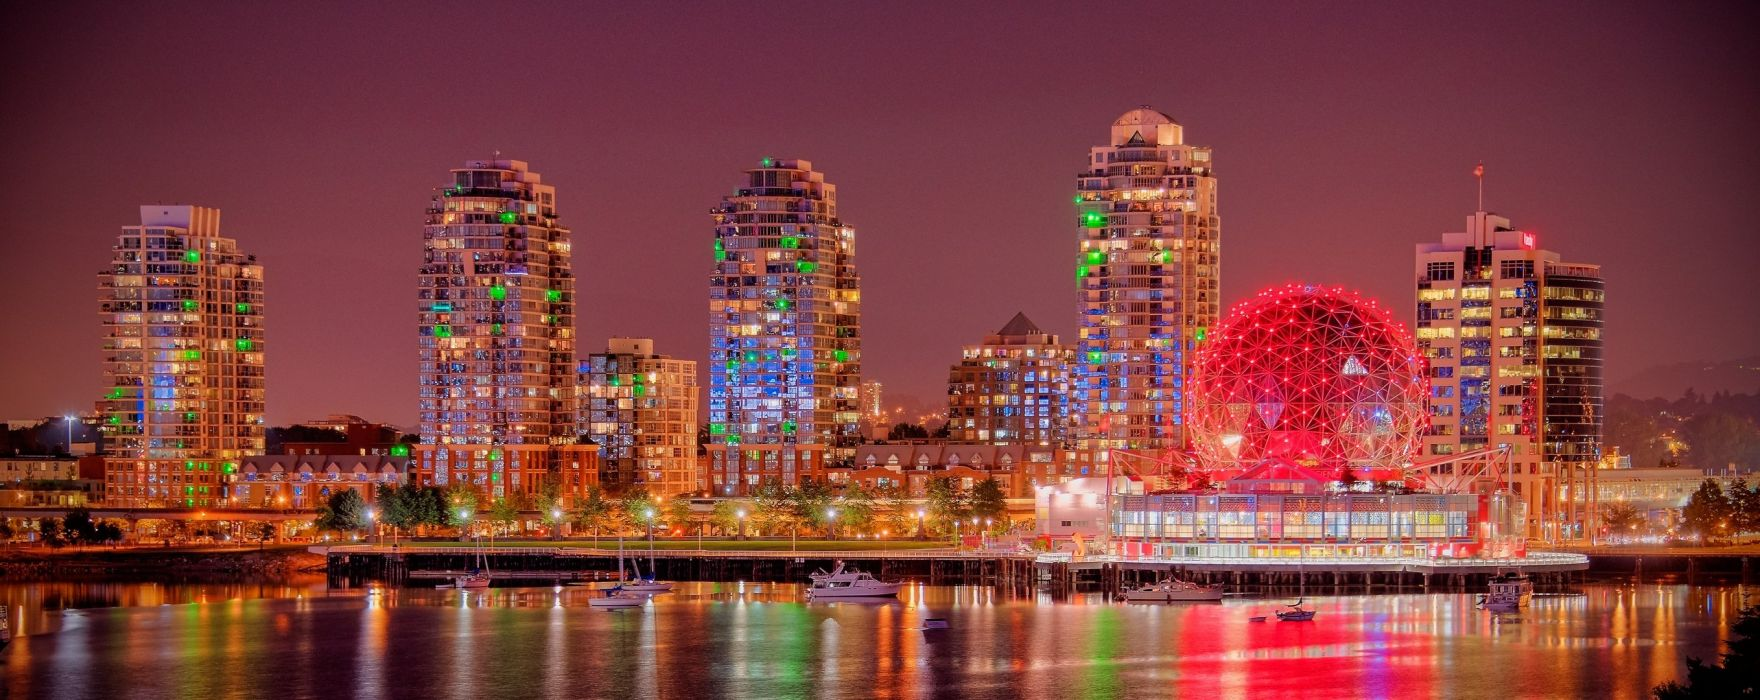 Canada Houses Night Waterfront Vancouver British Columbia Burrard Inlet Cities wallpaper